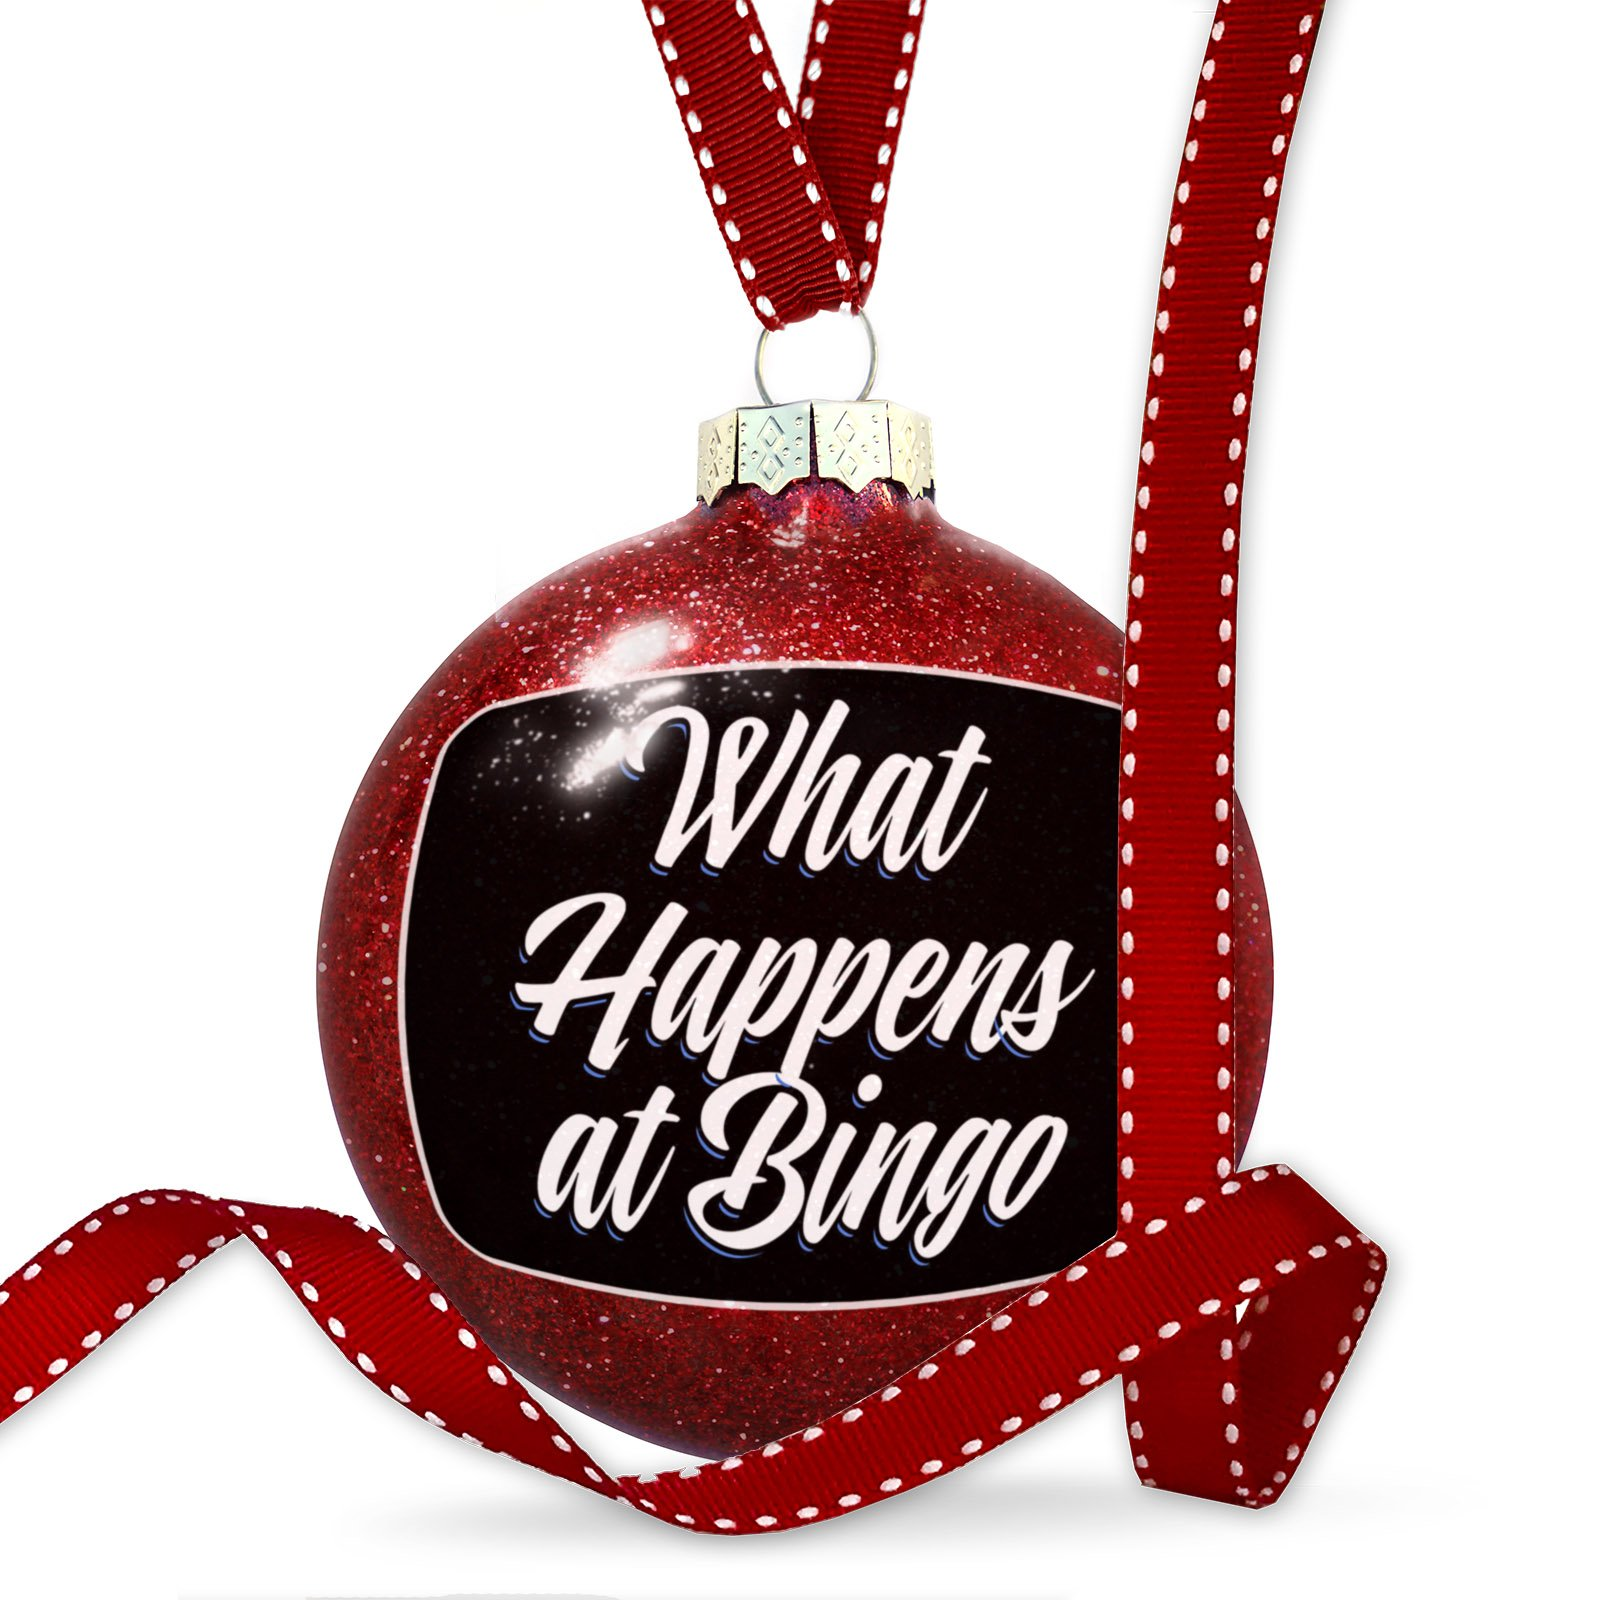 Christmas Decoration Classic design What Happens at Bingo Ornament by NEONBLOND